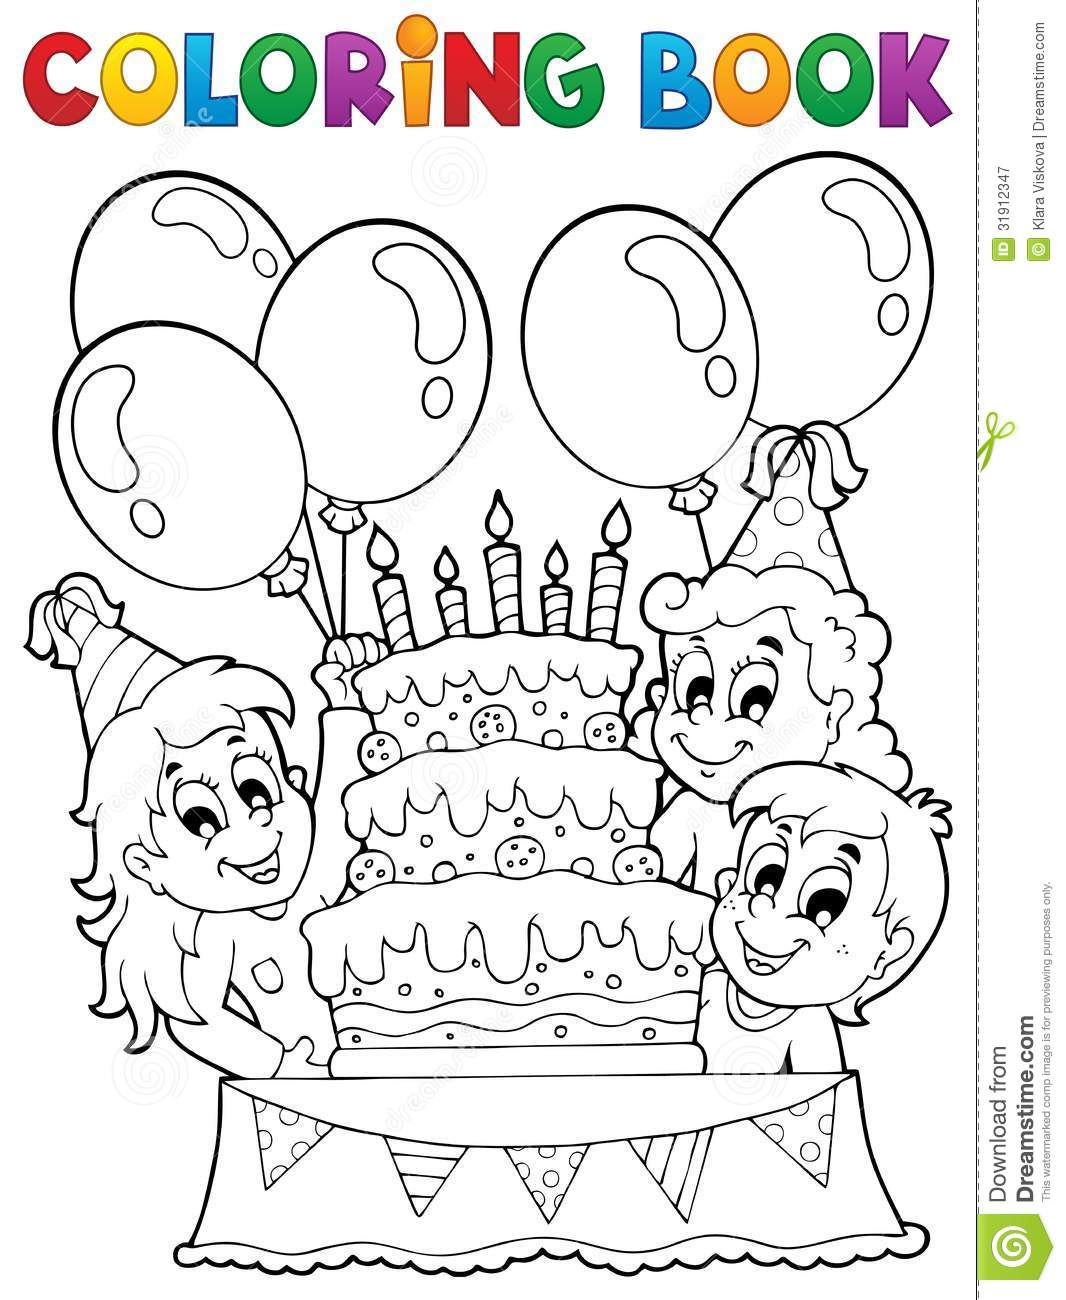 Kids Drawing Books at GetDrawings.com | Free for personal use Kids ...